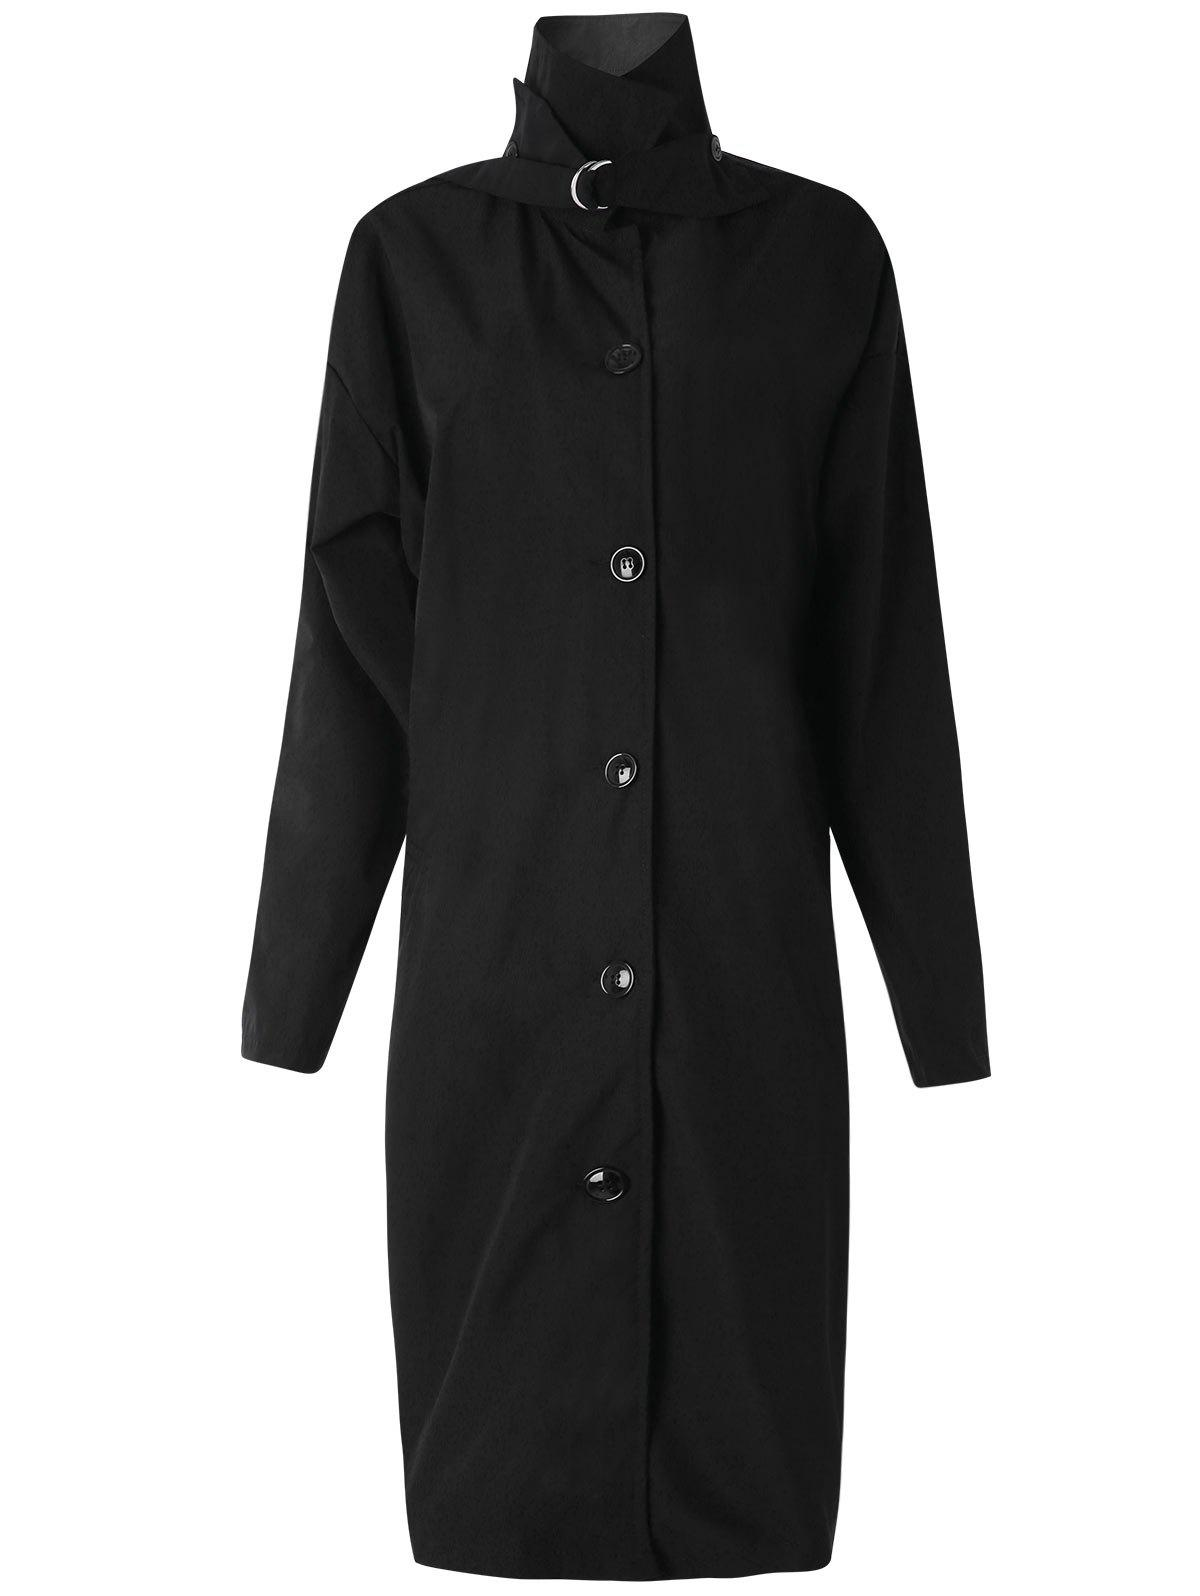 Cheap Buttone Up Longline Trench Coat